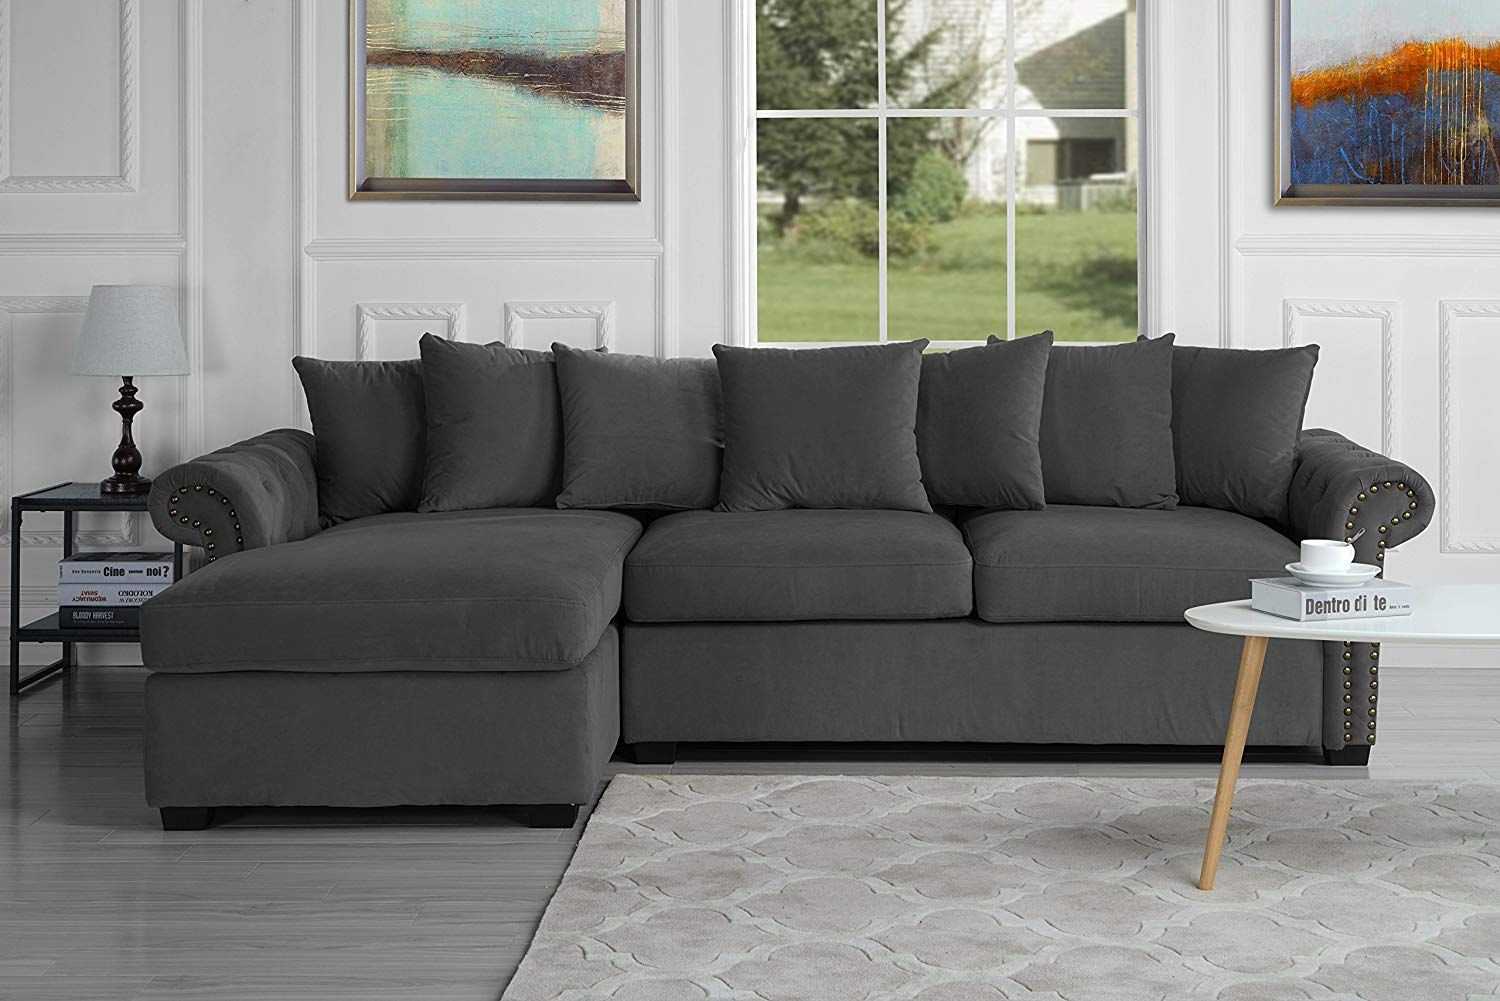 Amazon Com Modern Large Tufted Velvet Sectional Sofa Scroll Arm L Shape Couch Dark Grey Kitchen Dini L Shaped Couch L Shaped Sofa Fabric Sectional Sofas